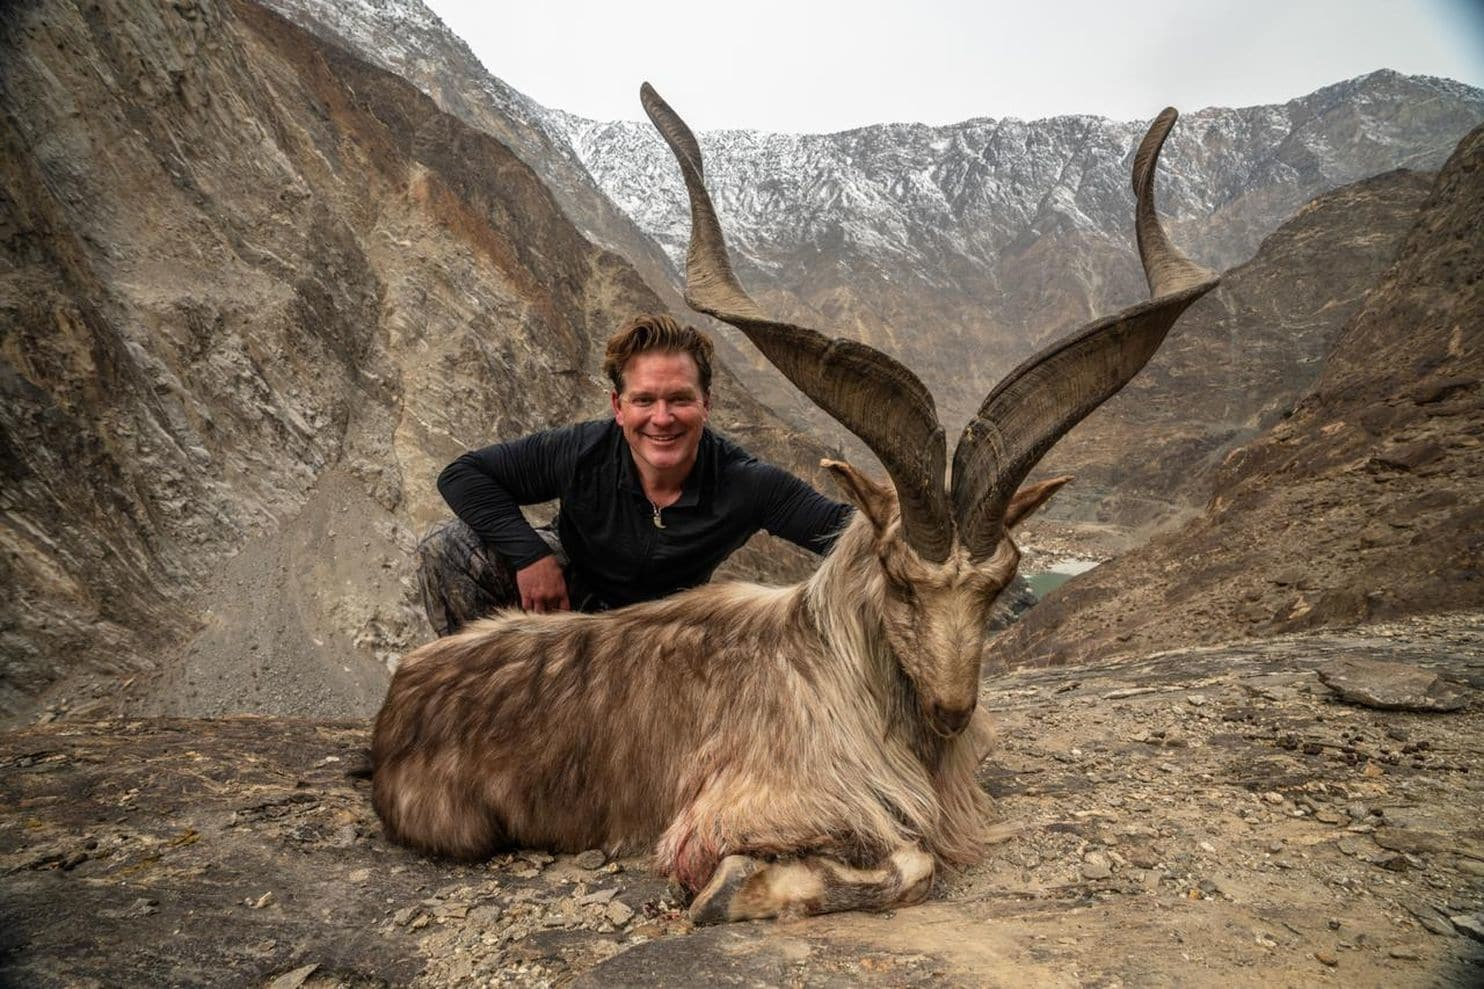 A Trophy Hunter Paid $110K To Hunt An Endangered Goat In Pakistan